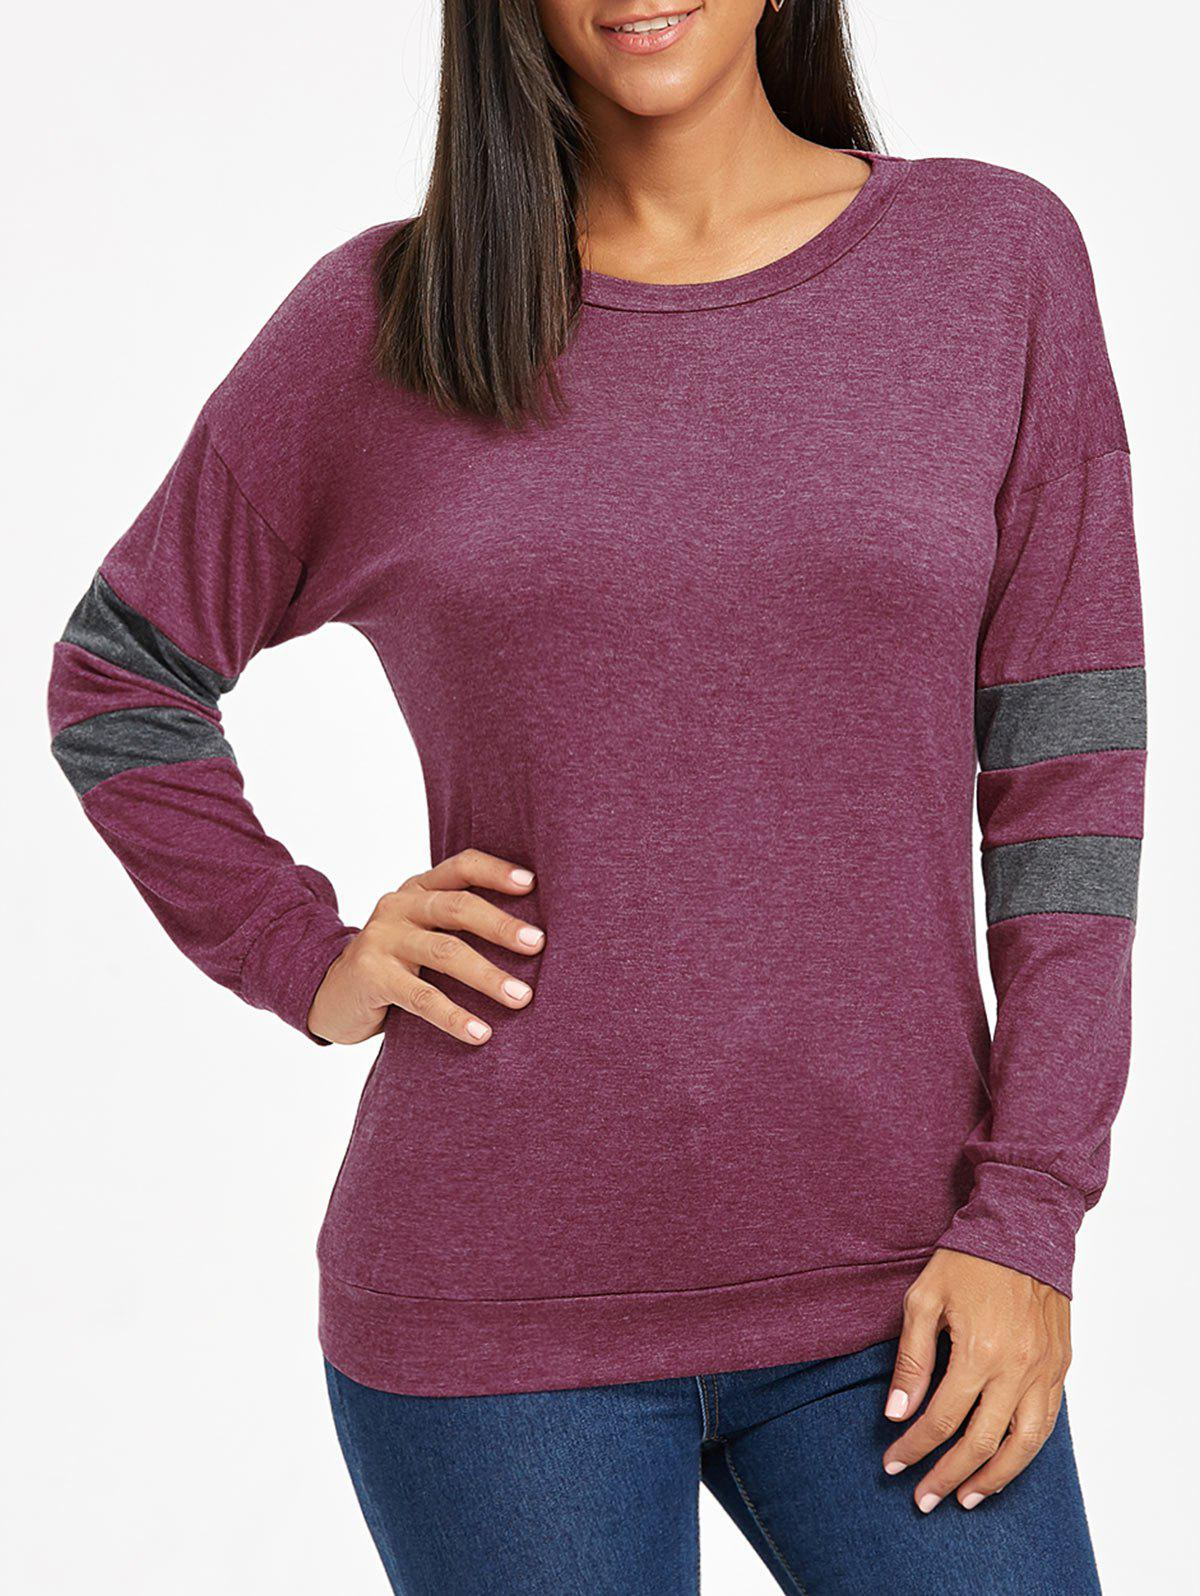 Drop Shoulder Color Block Tunic Sweatshirt - PURPLE M